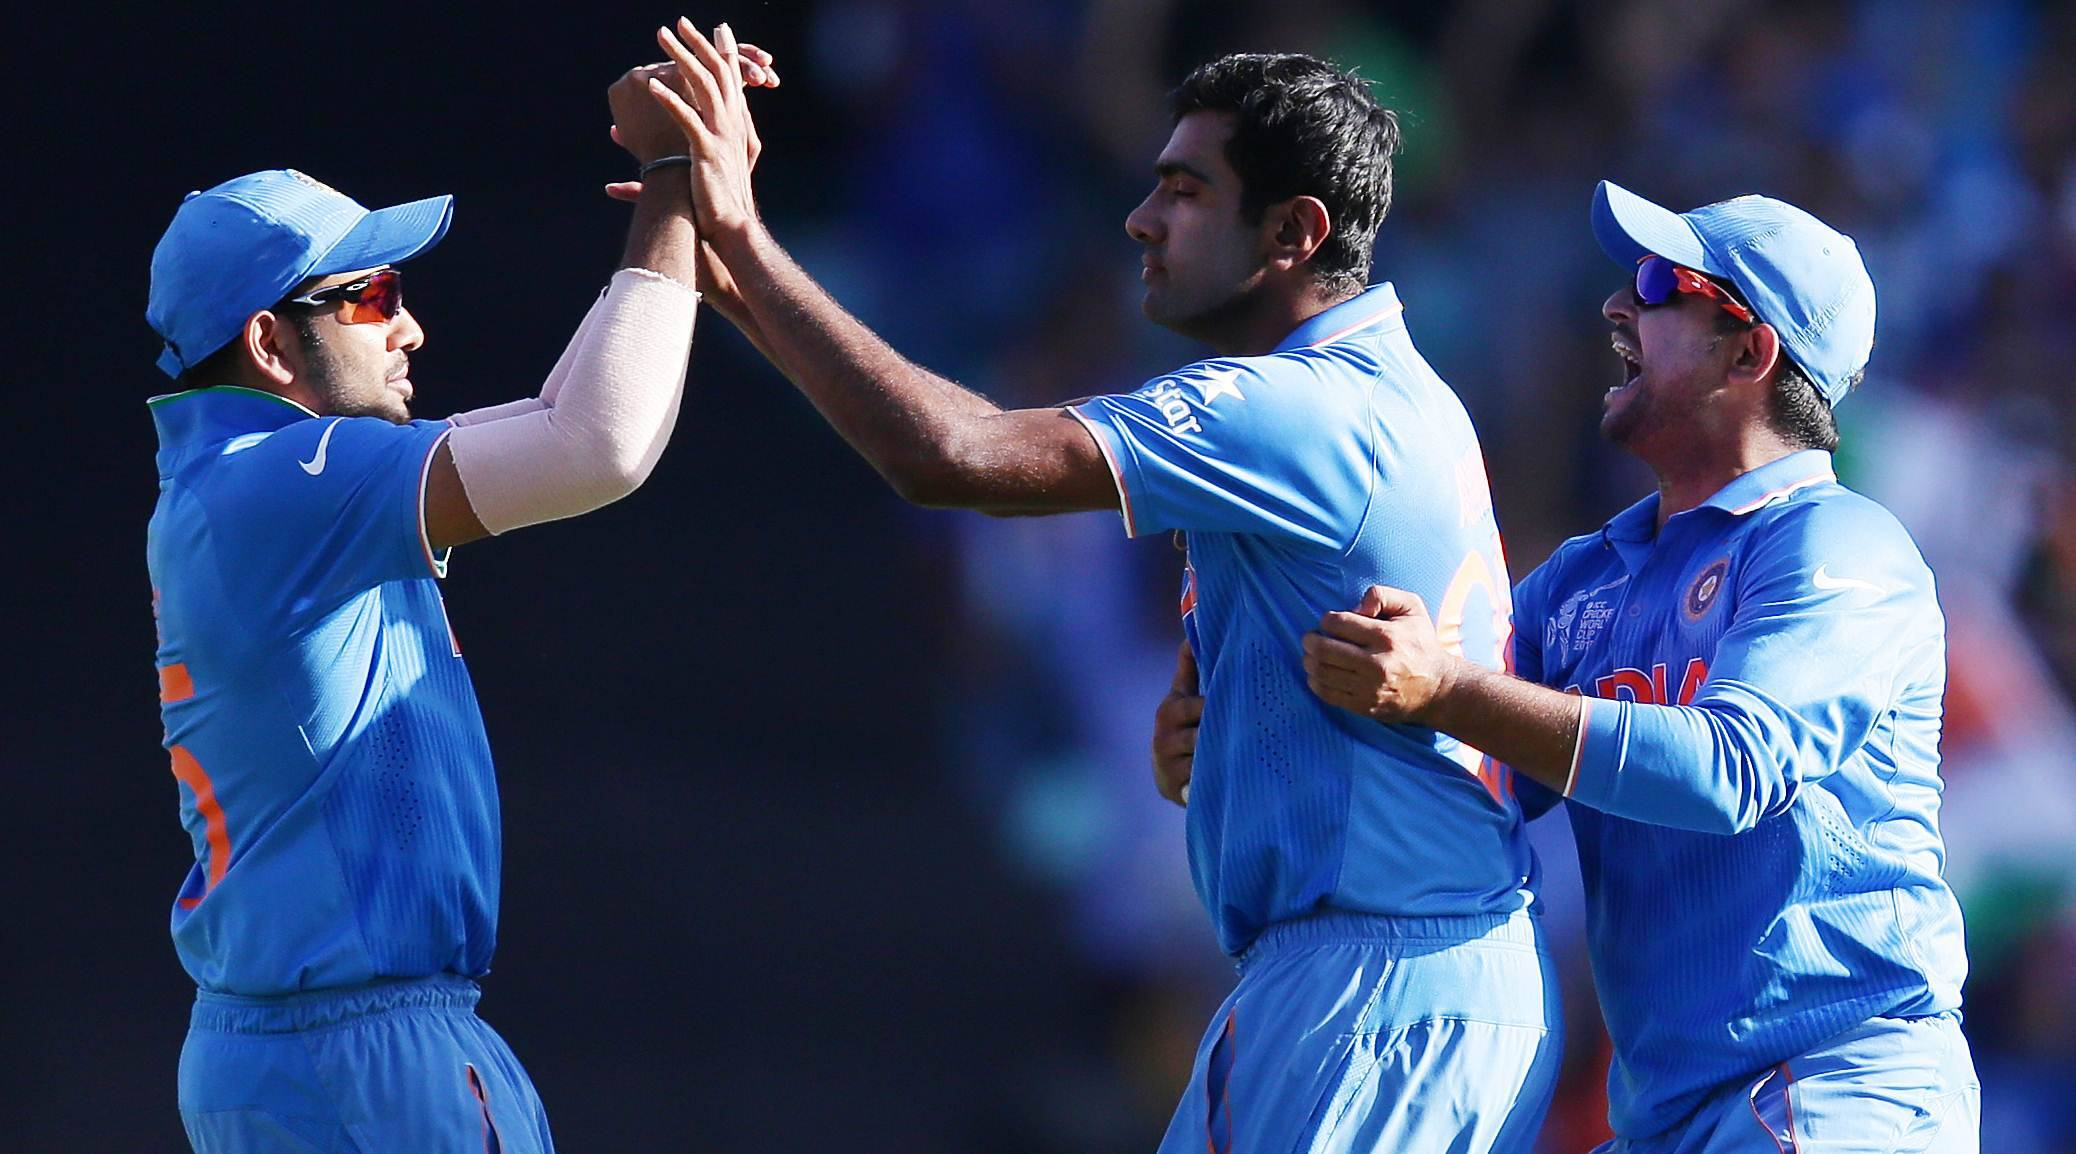 India's Ravichandran Ashwin, centre, is congratulated by teammates Rohit Sharma and Suresh Raina, right, after taking the wicket of Australia's Glenn Maxwell  during their Cricket World Cup semifinal in Sydney, Australia, Thursday, March 26, 2015. (AP Photo/Rob Griffith)